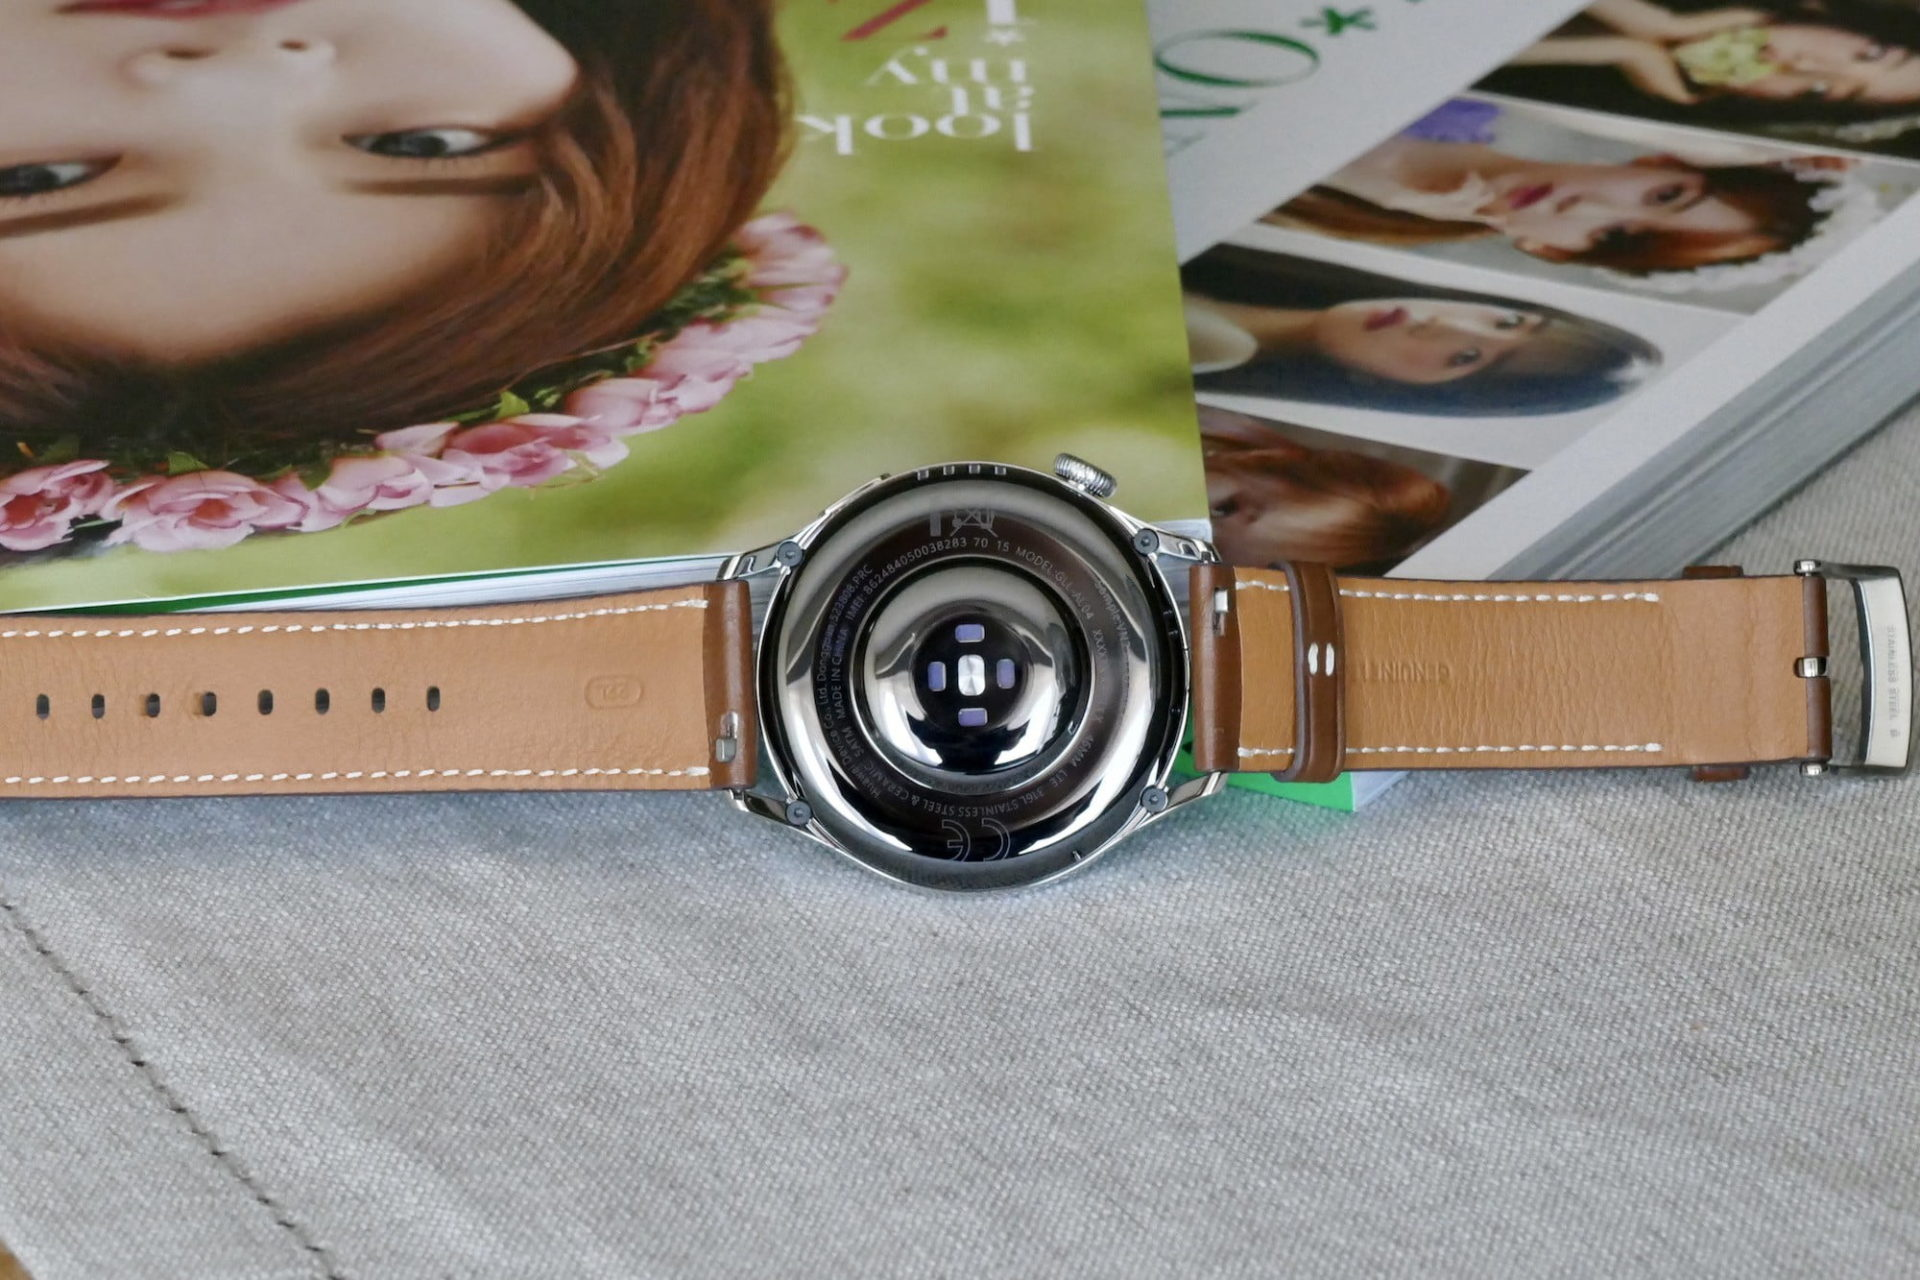 The back of the Huawei Watch 3